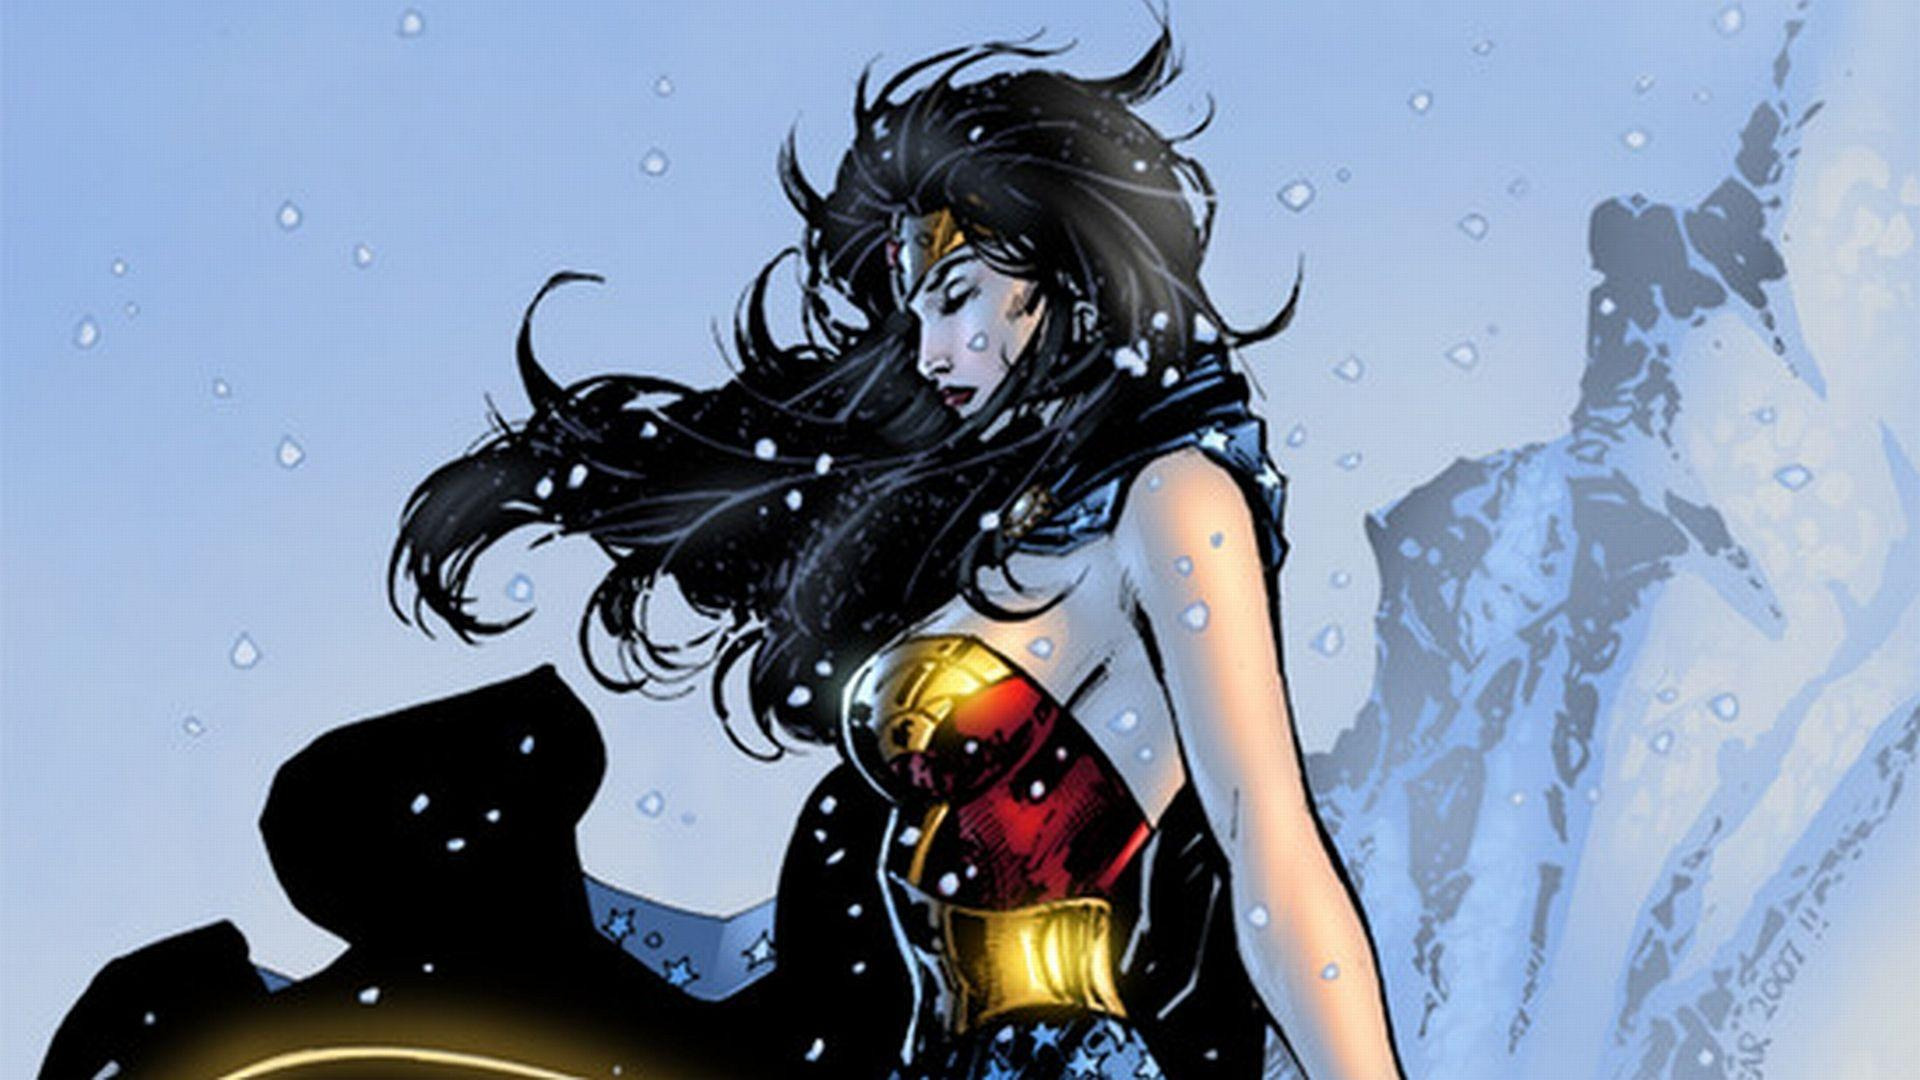 wonder woman wallpaper 4956 hd amazing - ismar.us